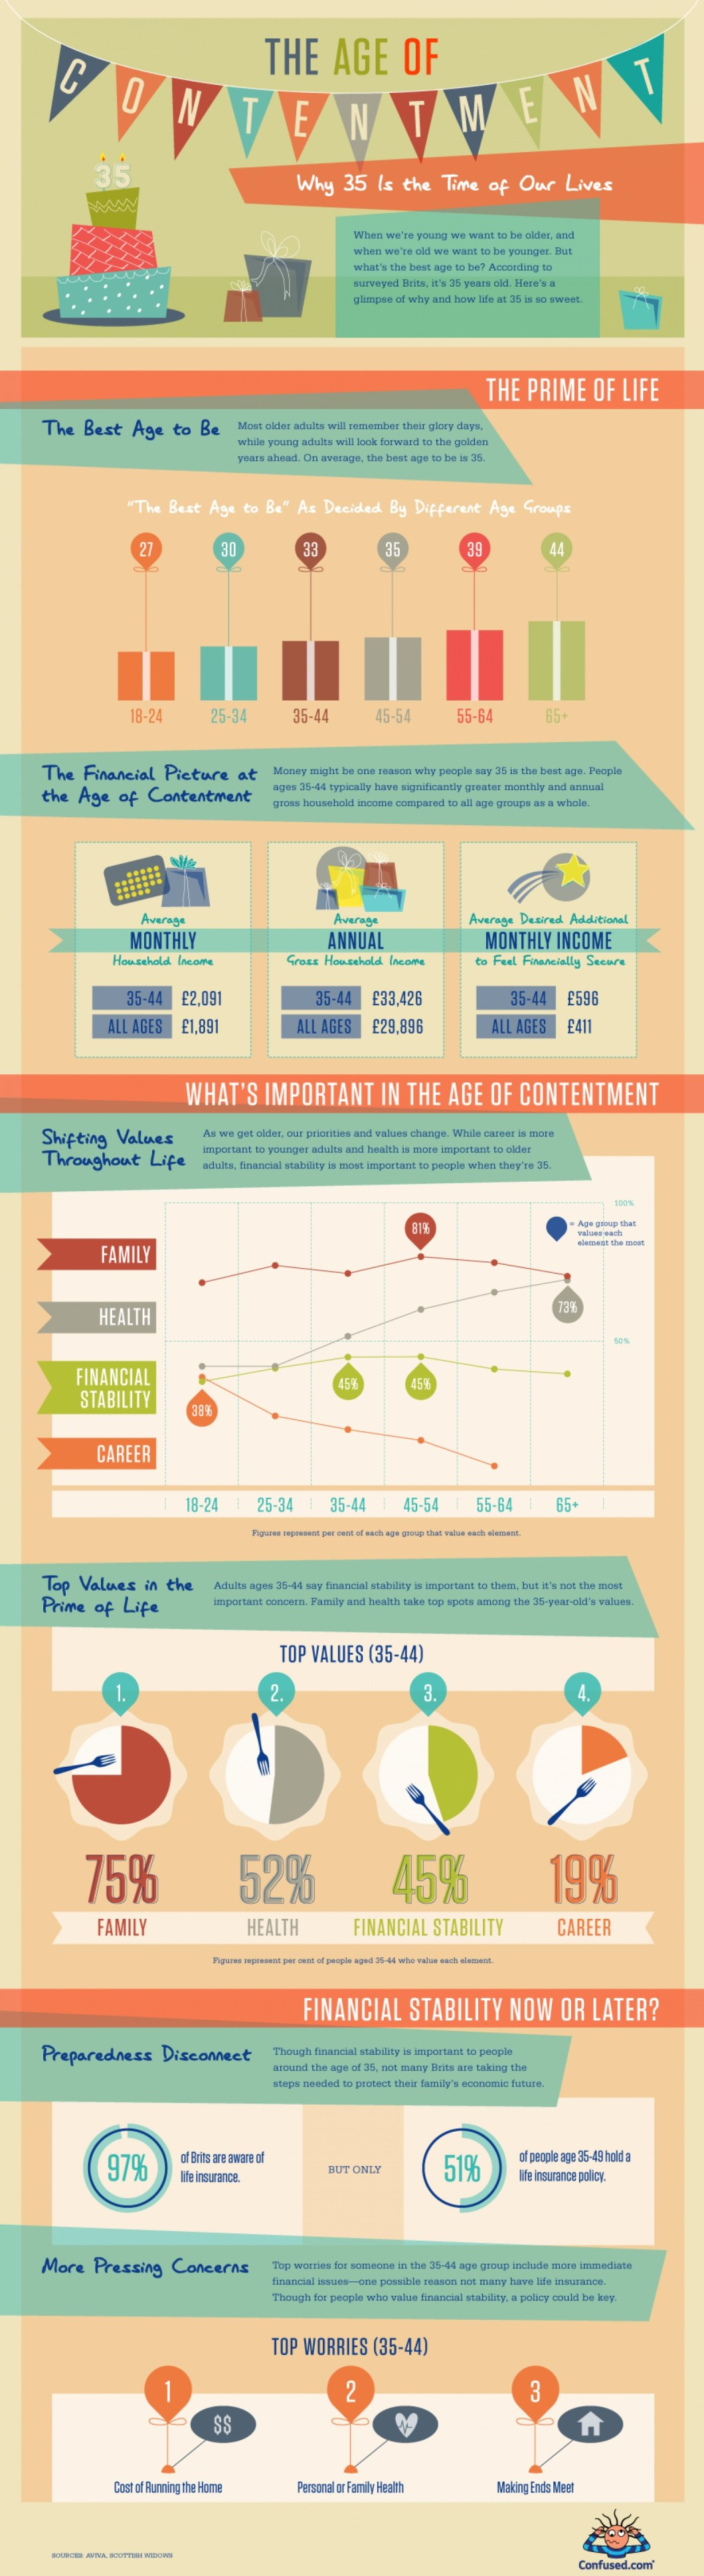 Is 35 the Age of Contentment? - Infographic